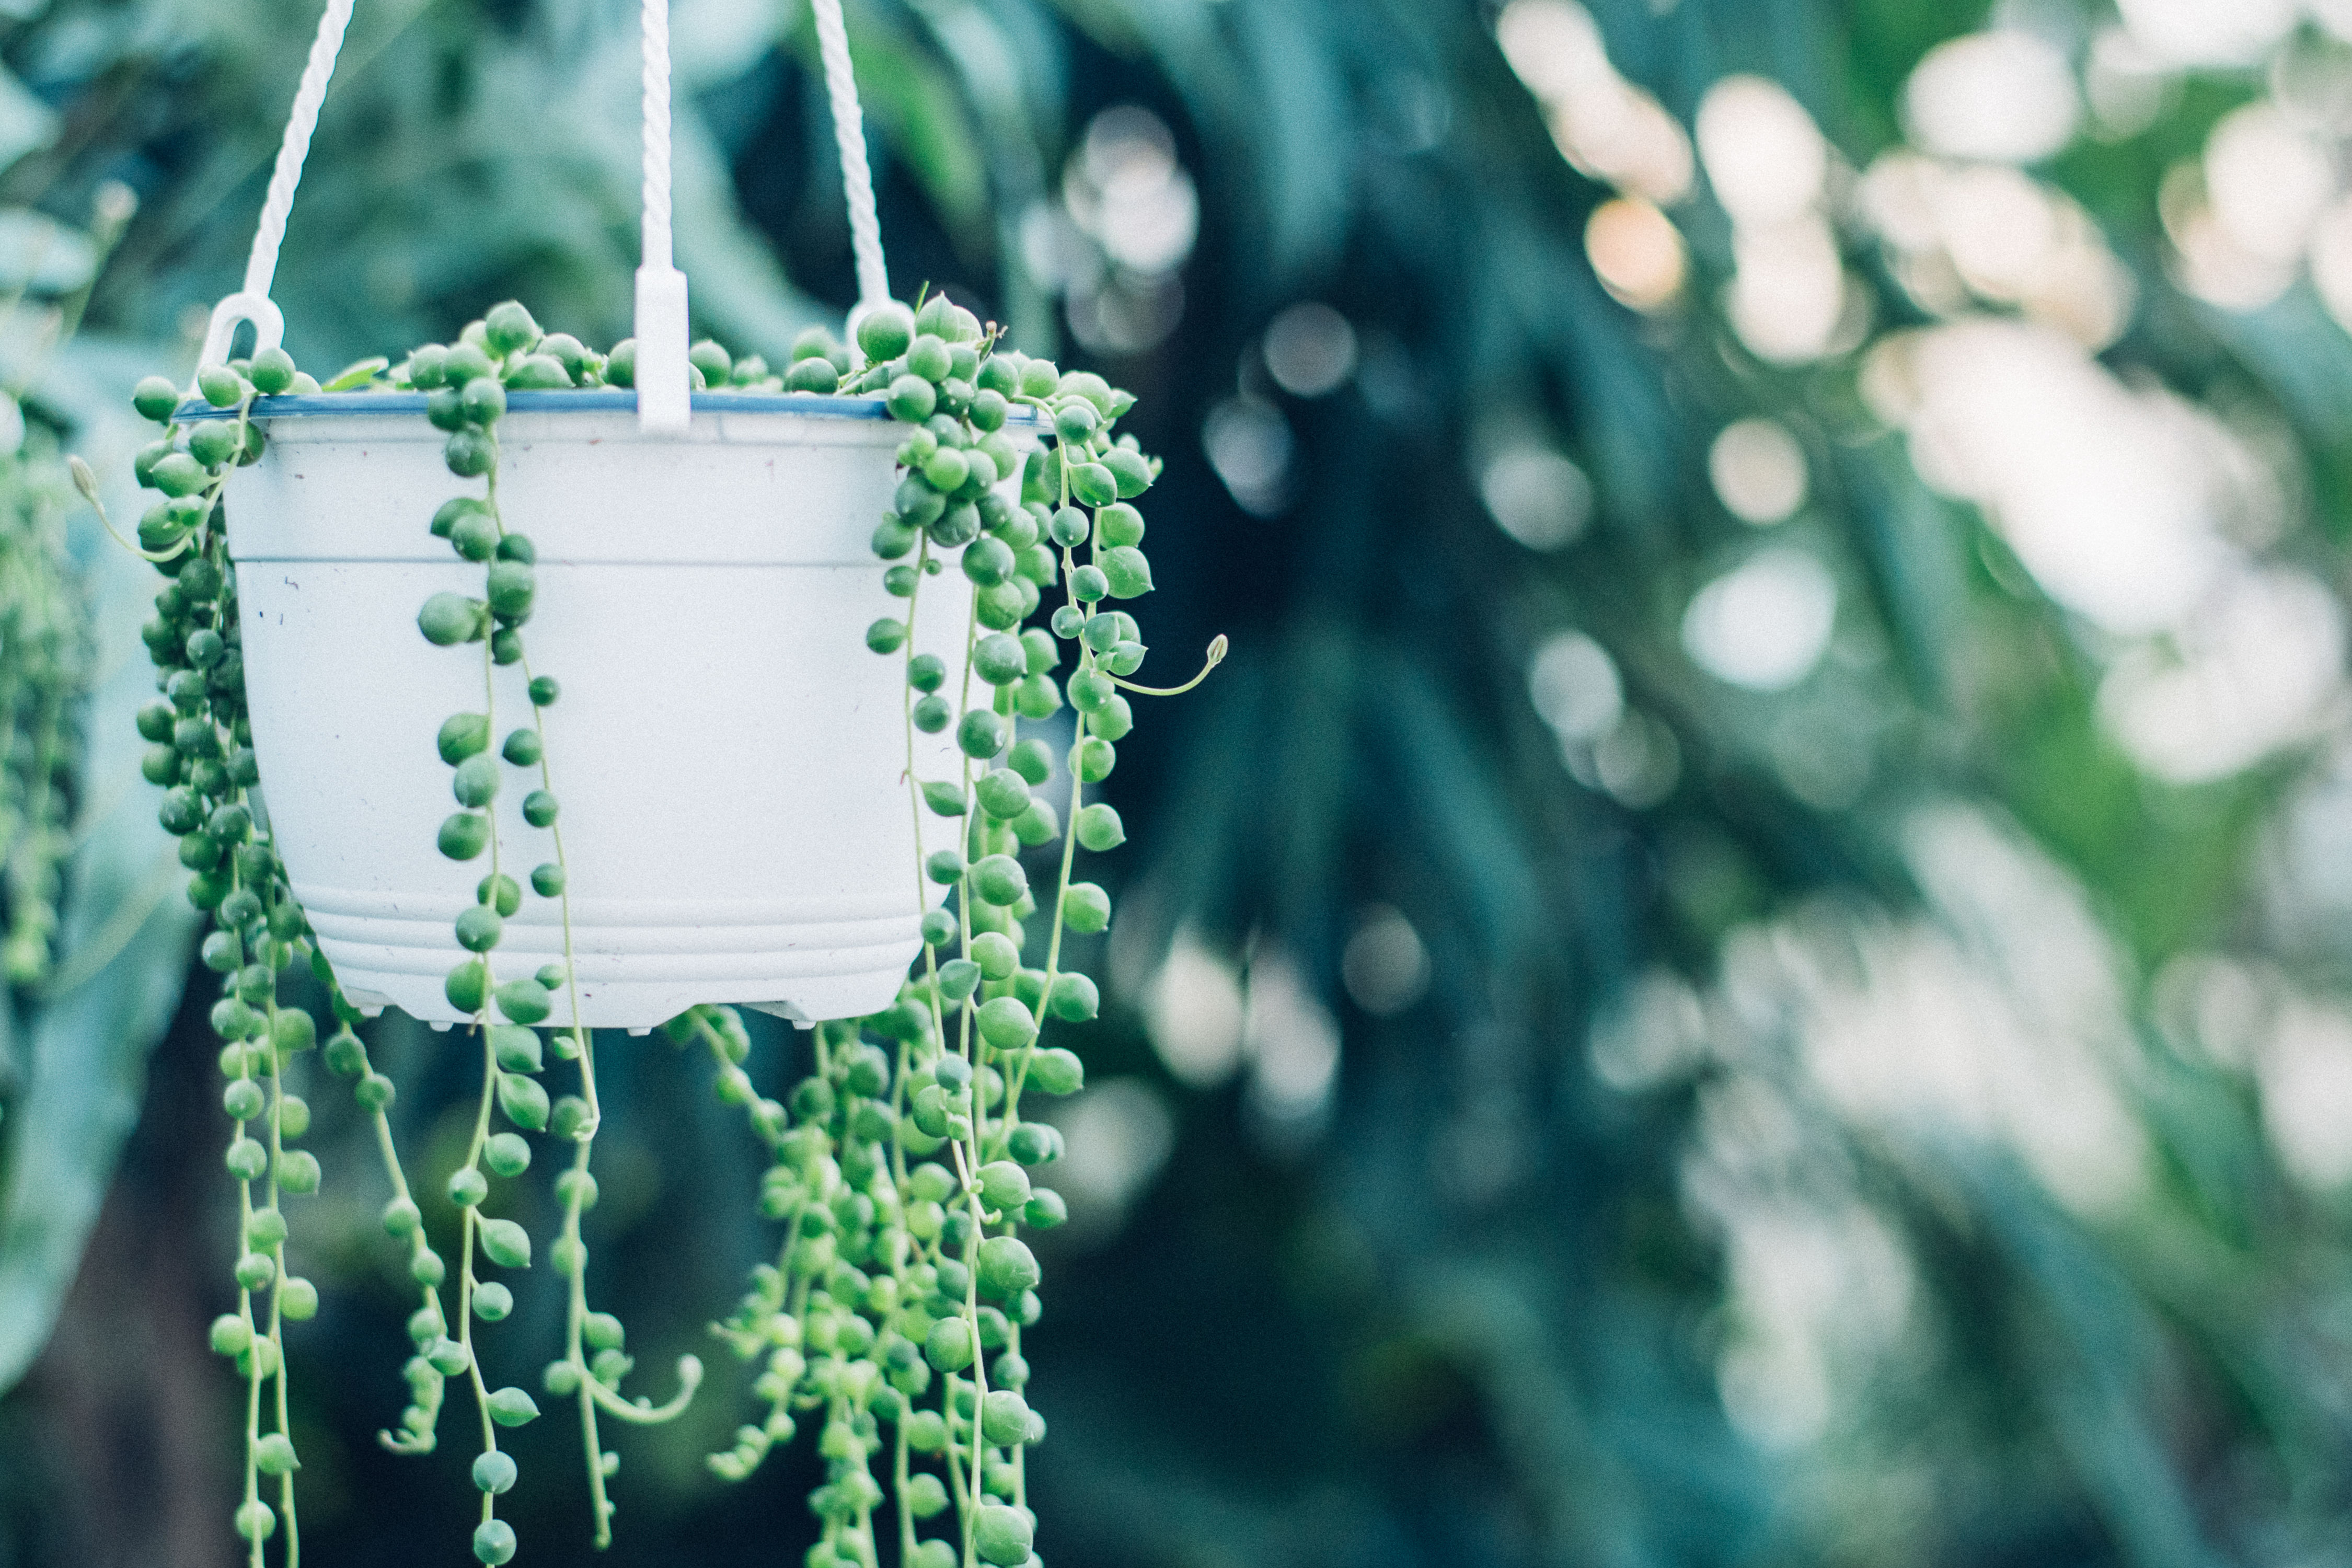 String-of-Pearls Is Everyone's Favorite Globular Succulent